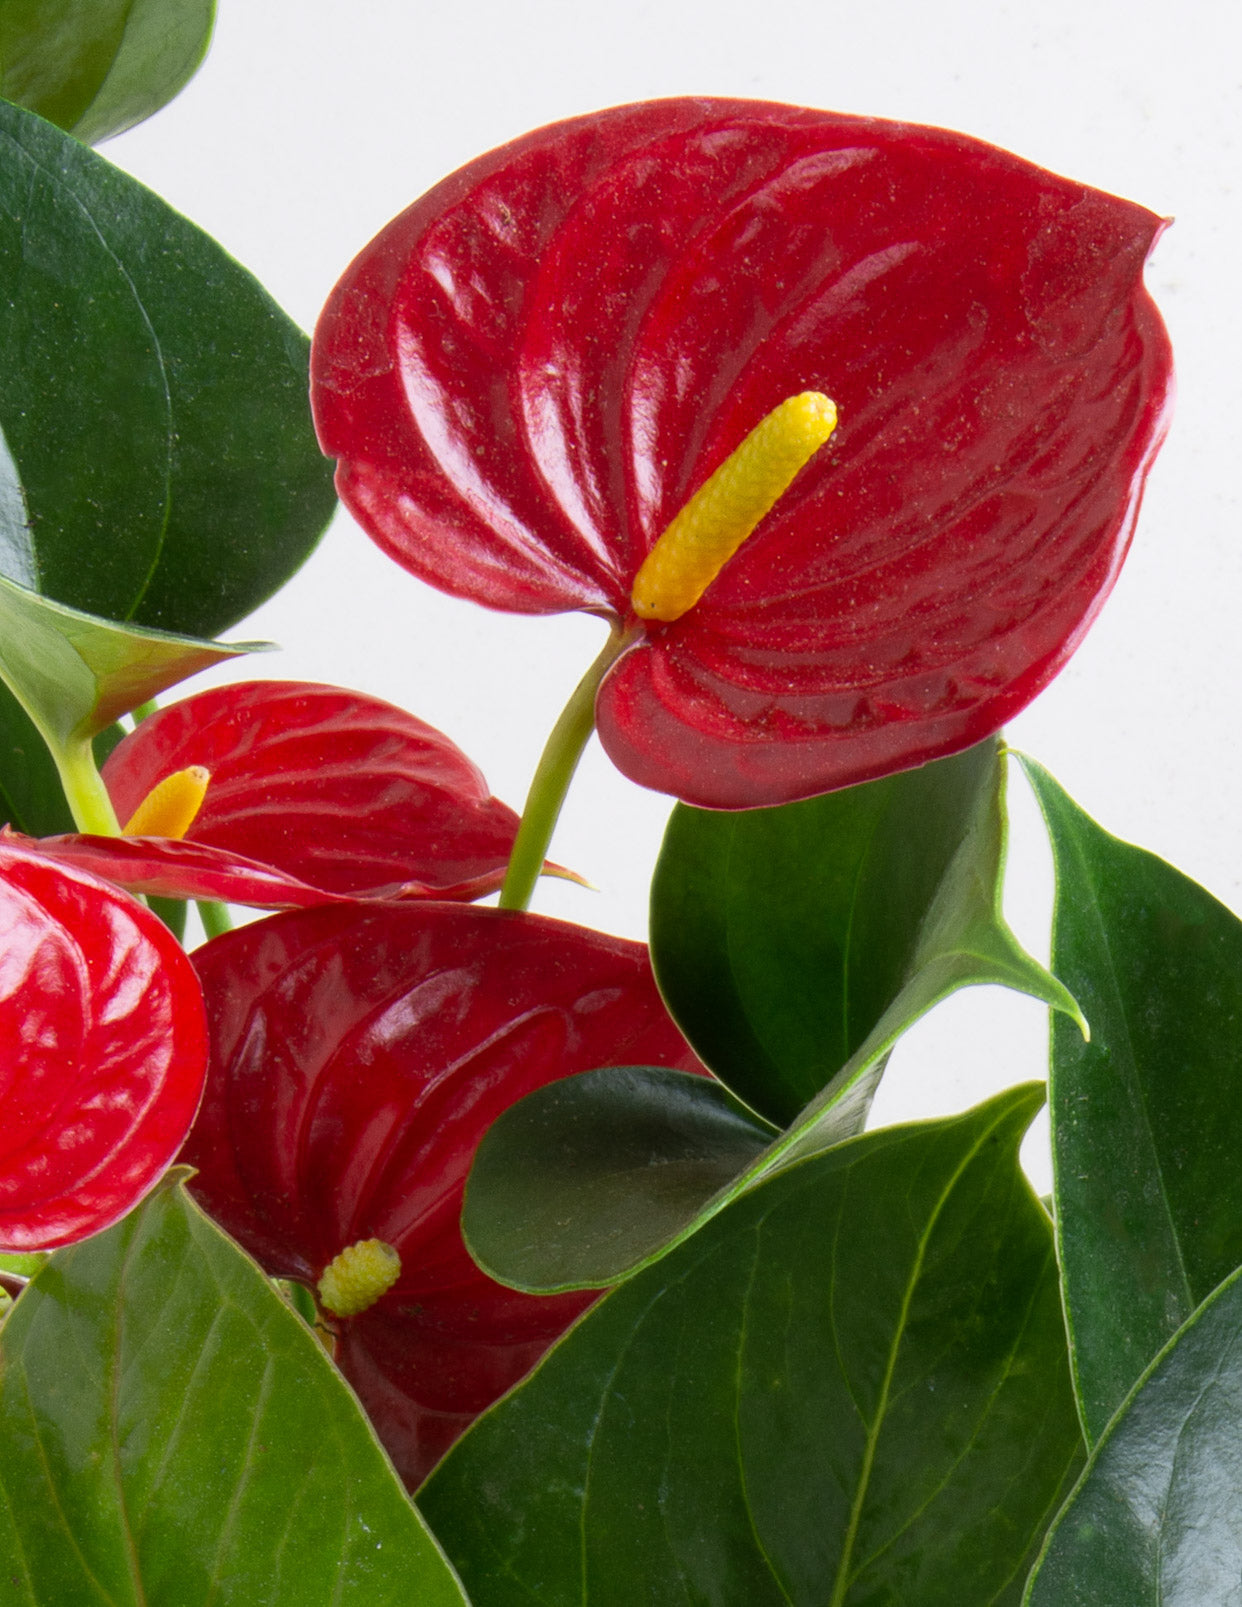 All About Araceae: A Guide to Growing and Caring for Indoor Aroids - Pistils Nursery